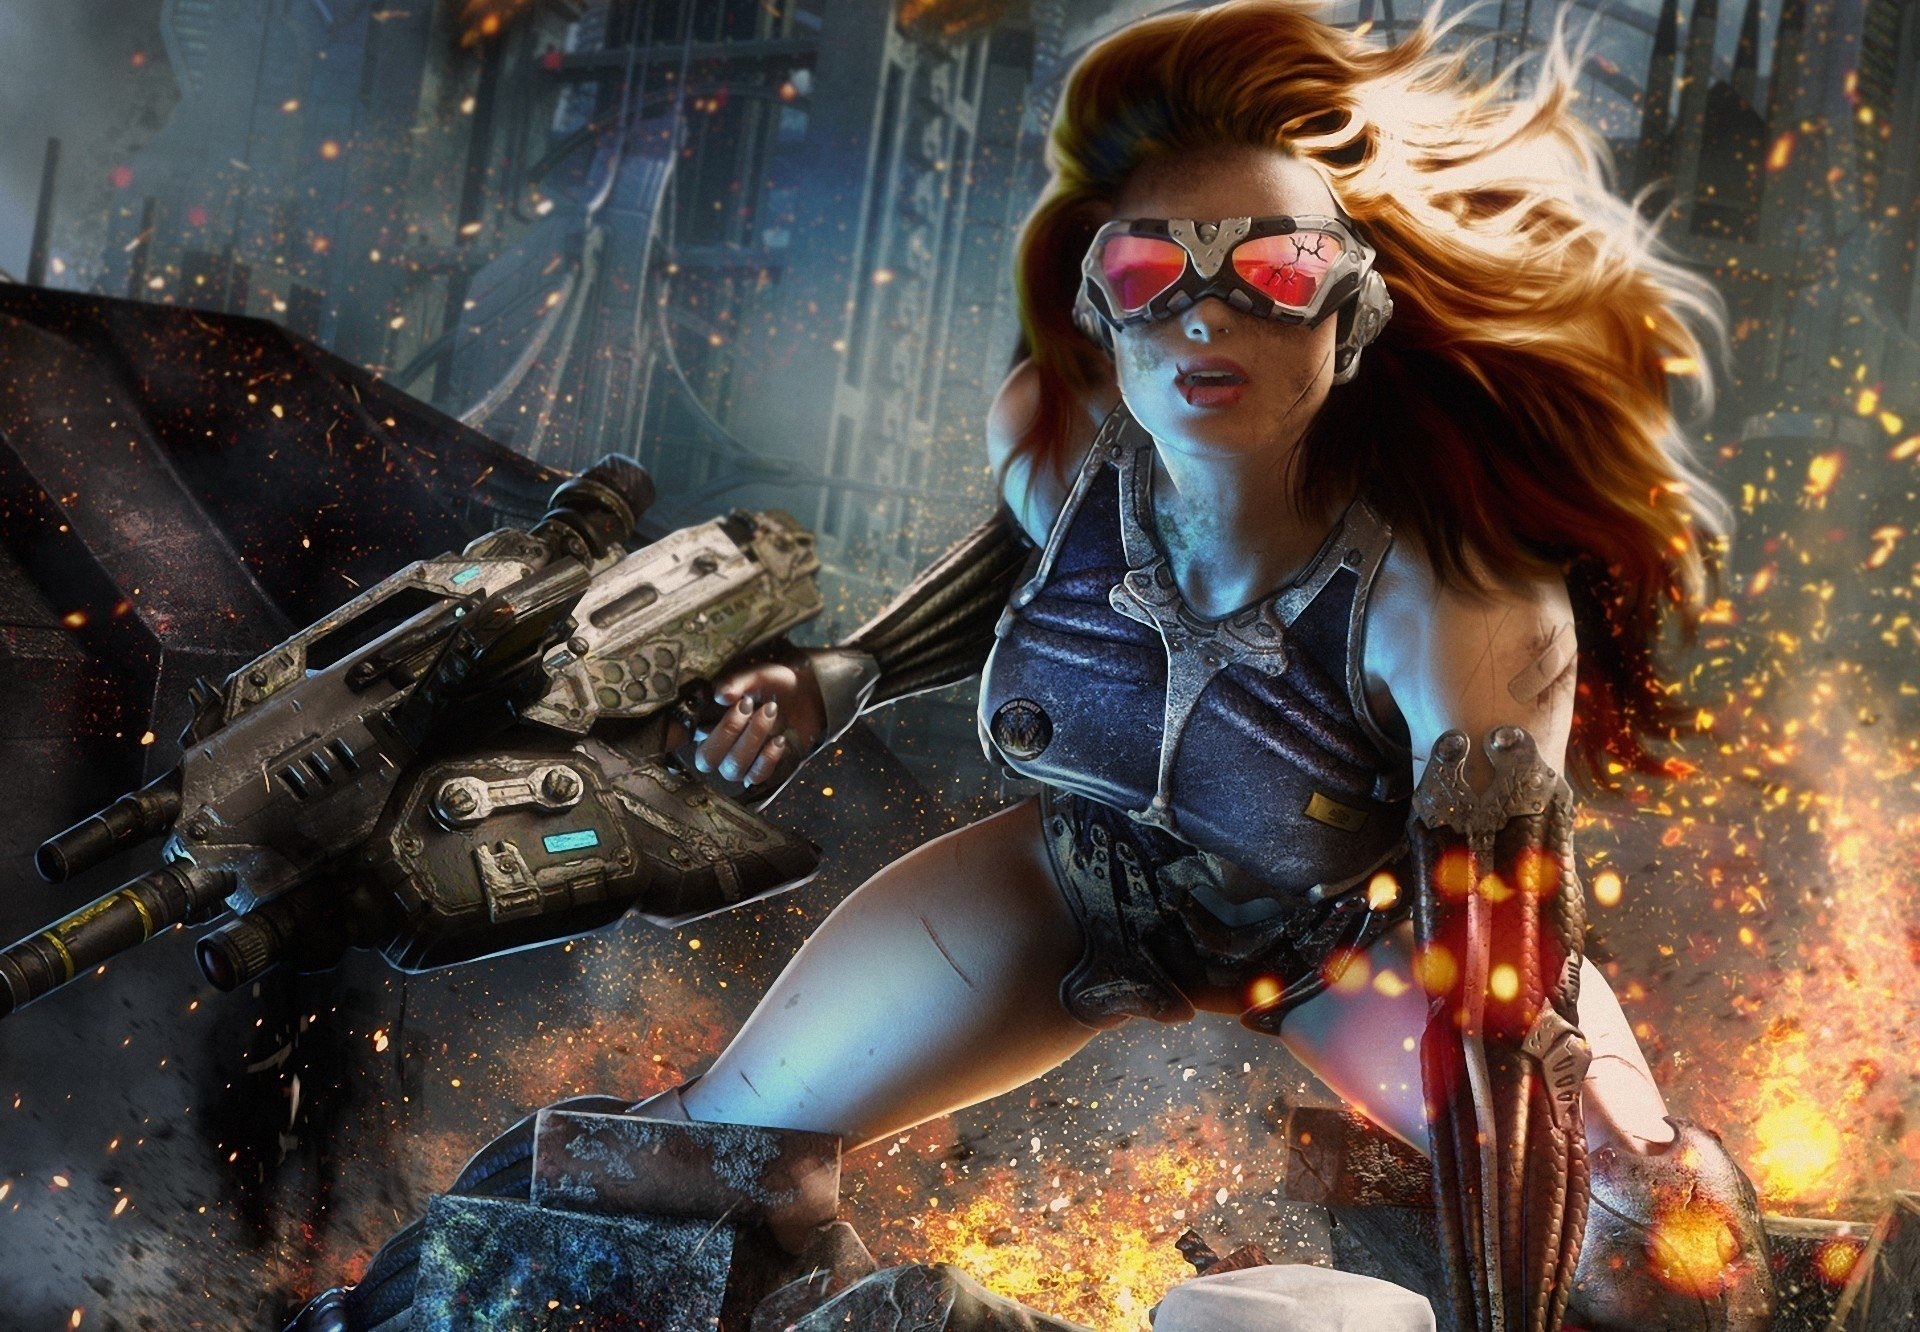 Sci Fi - Women Warrior  Cyborg Redhead Wallpaper